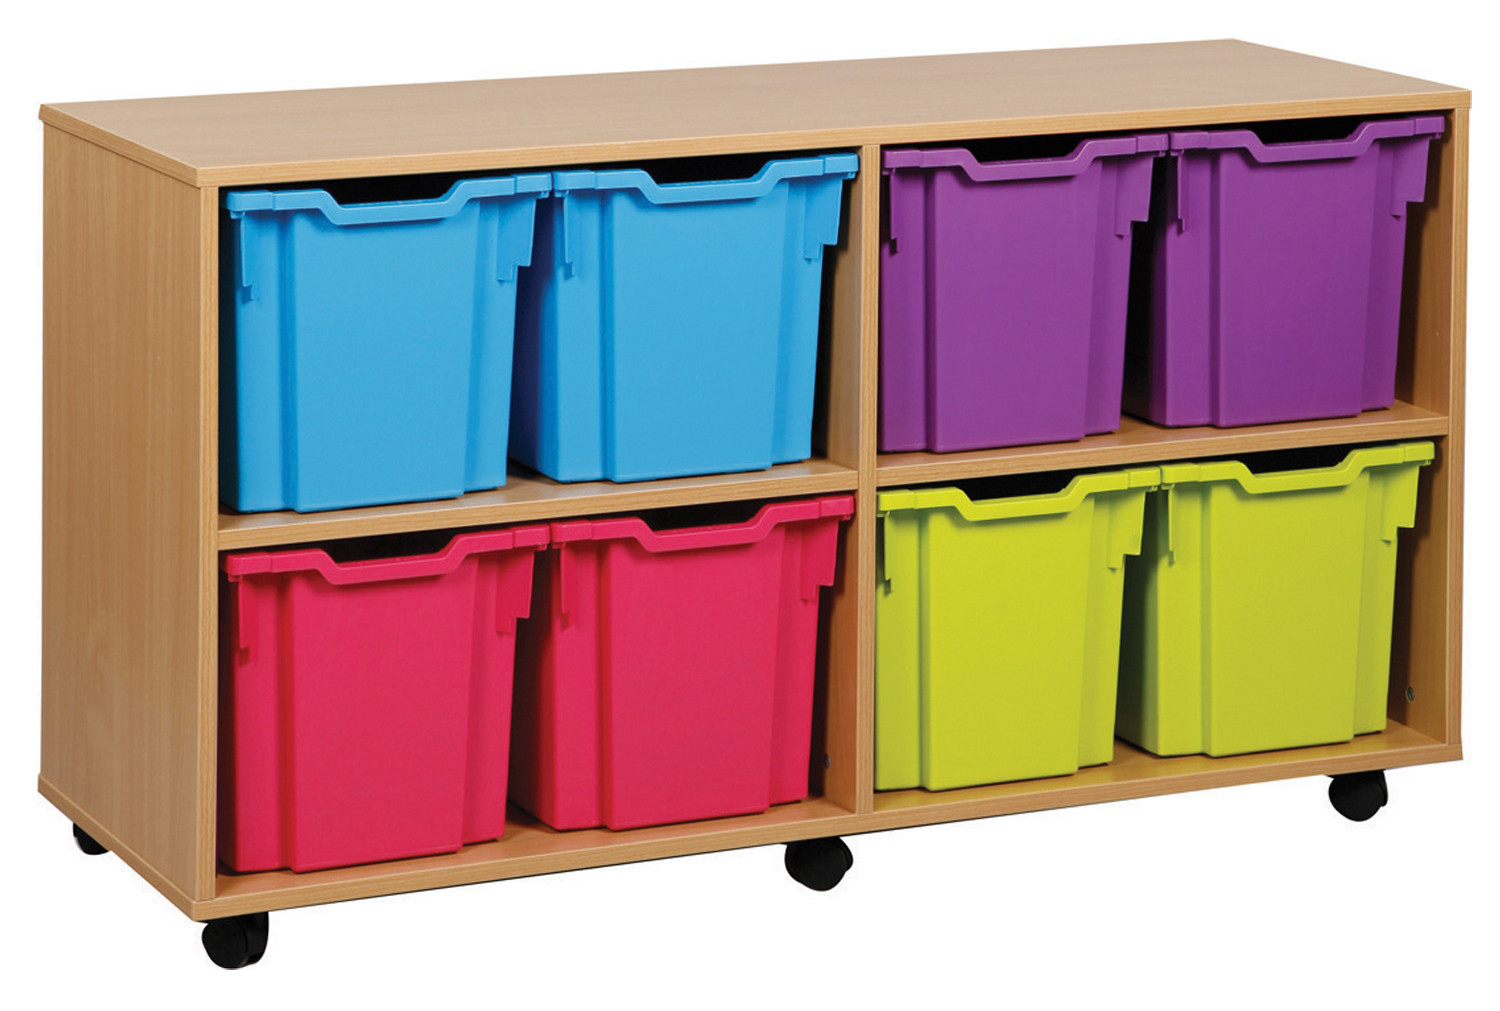 8 Jumbo Tray Storage Unit. Find Loads More Colours, Materials & Styles Online - Buy Office Furniture Online